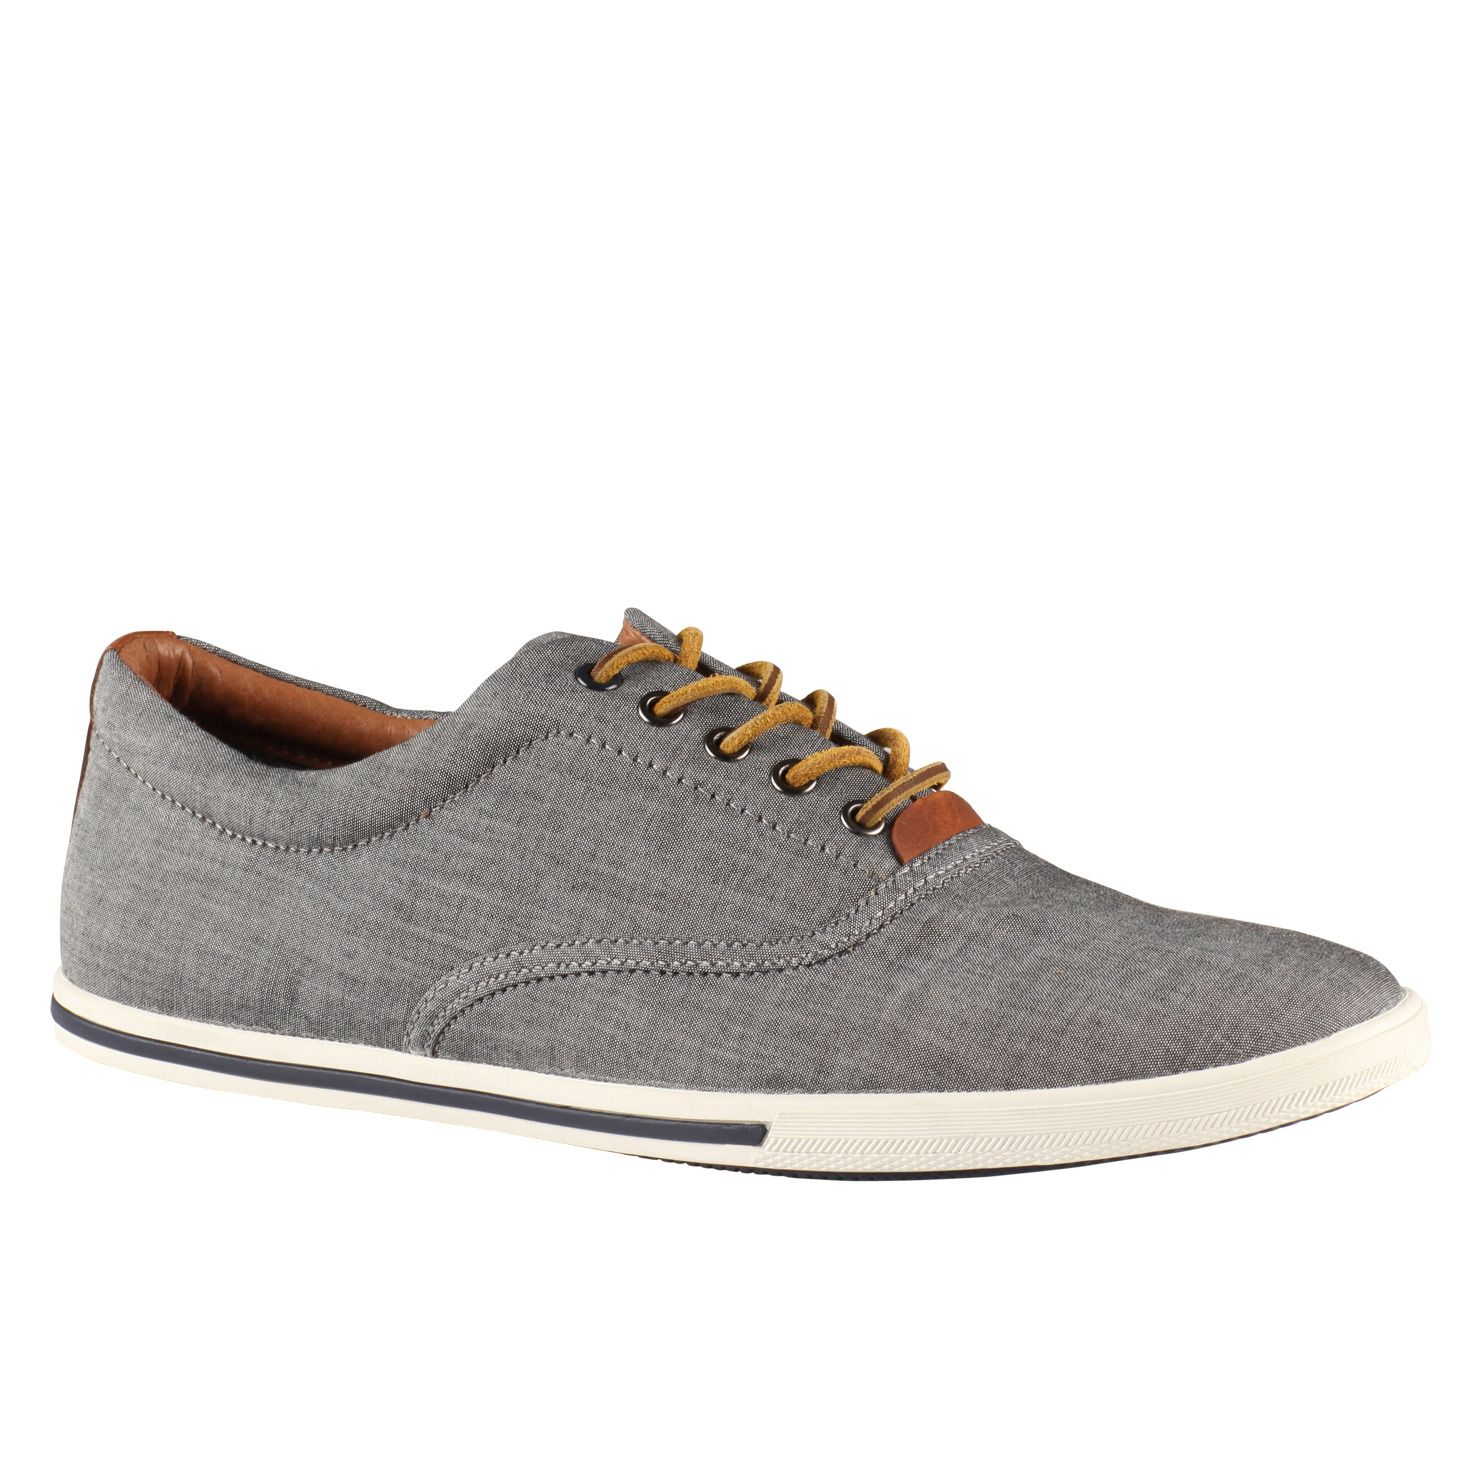 9e1dced24722 TURI - mens sneakers shoes for sale at ALDO Shoes.